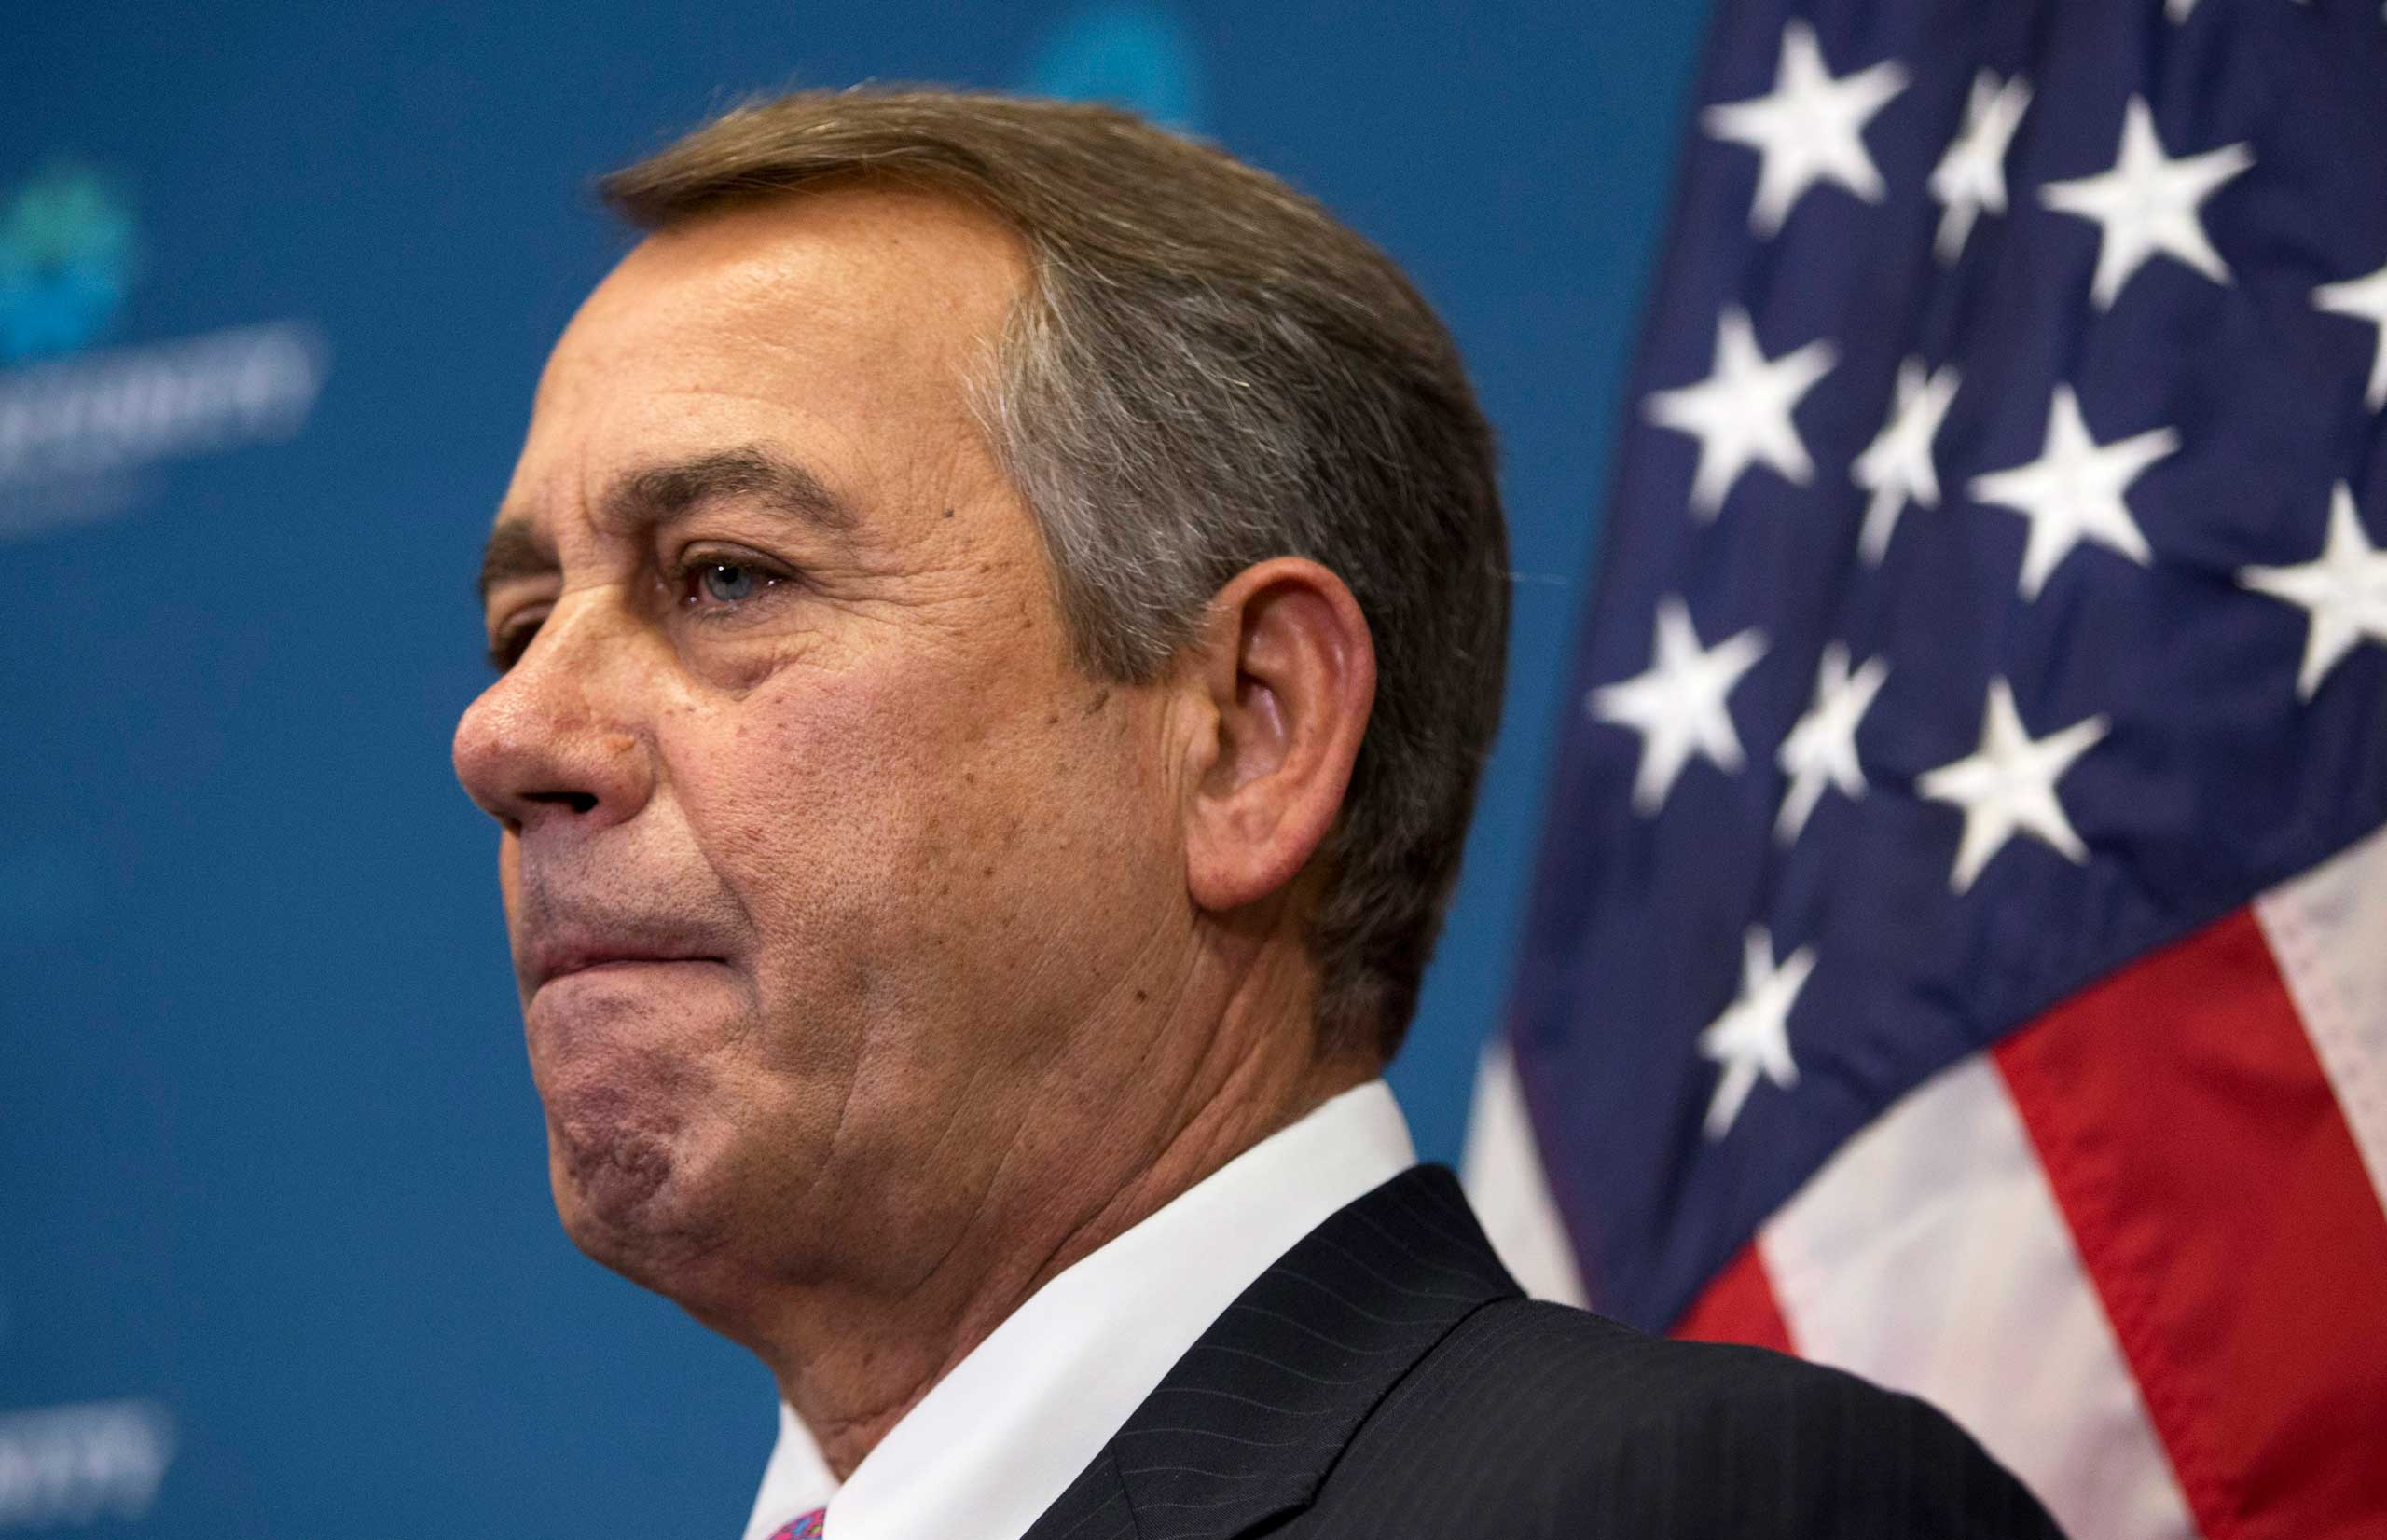 Outgoing House Speaker John Boehner of Ohio listens to reporters' questions during a news conference on Capitol Hill in Washington, Oct. 7, 2015.